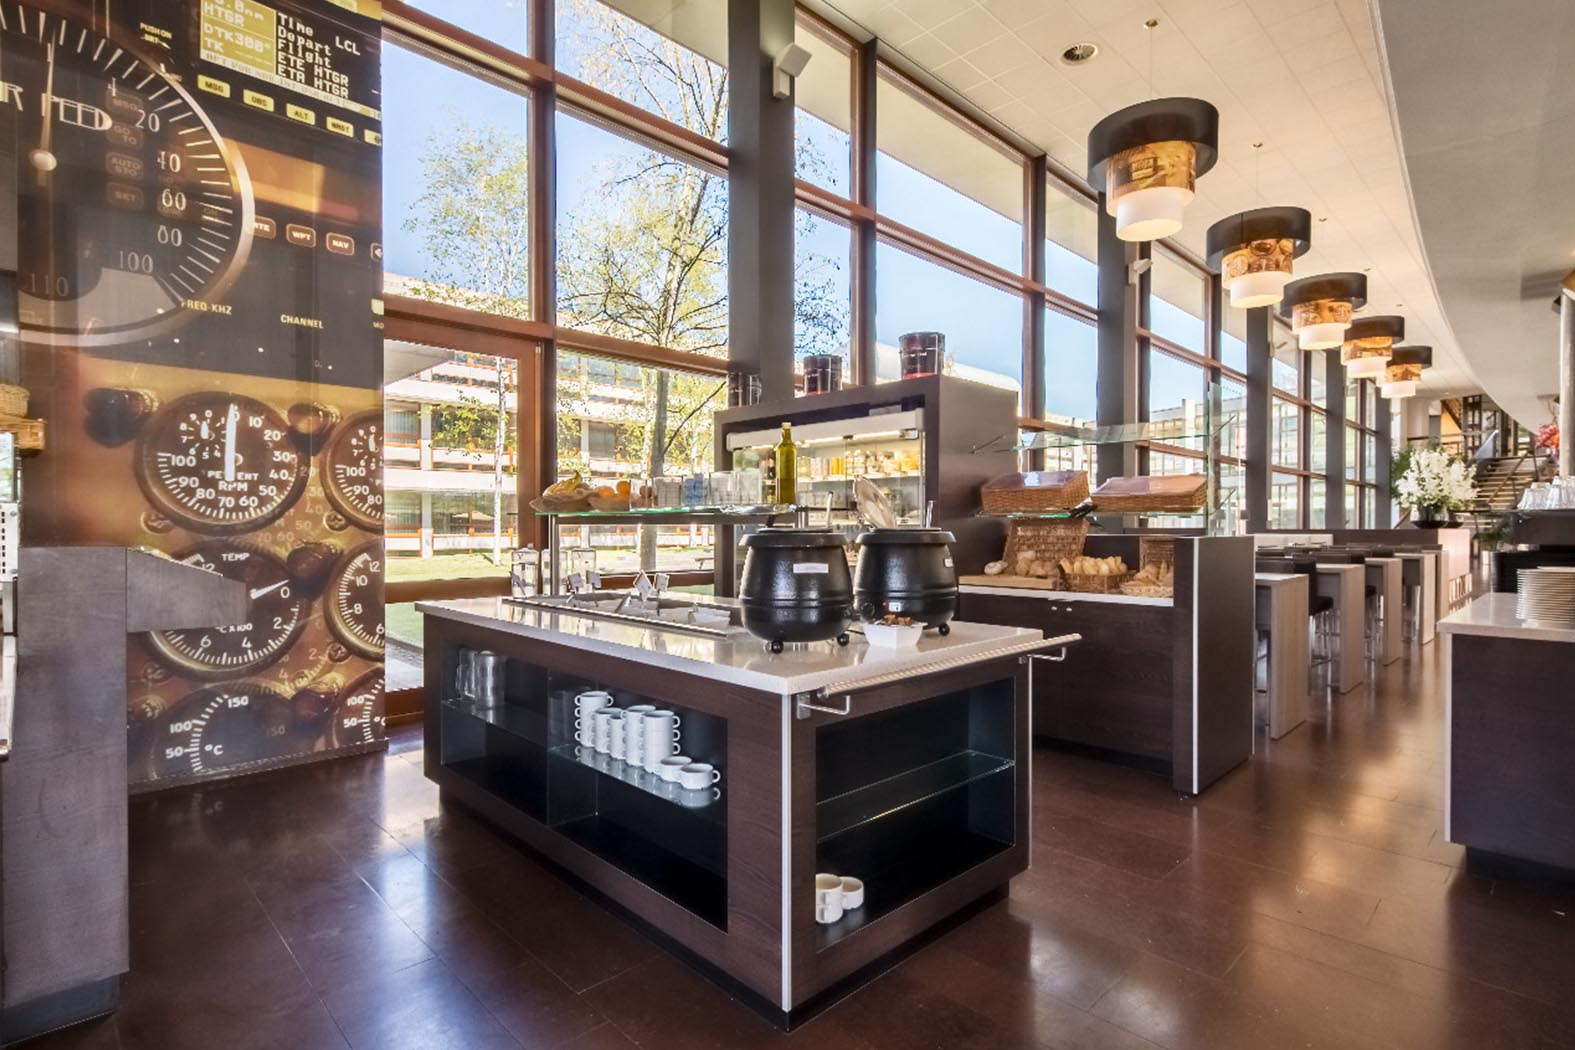 Restaurant Crown | Gize-Rijen | Crown Business Center Gilze-Rijen